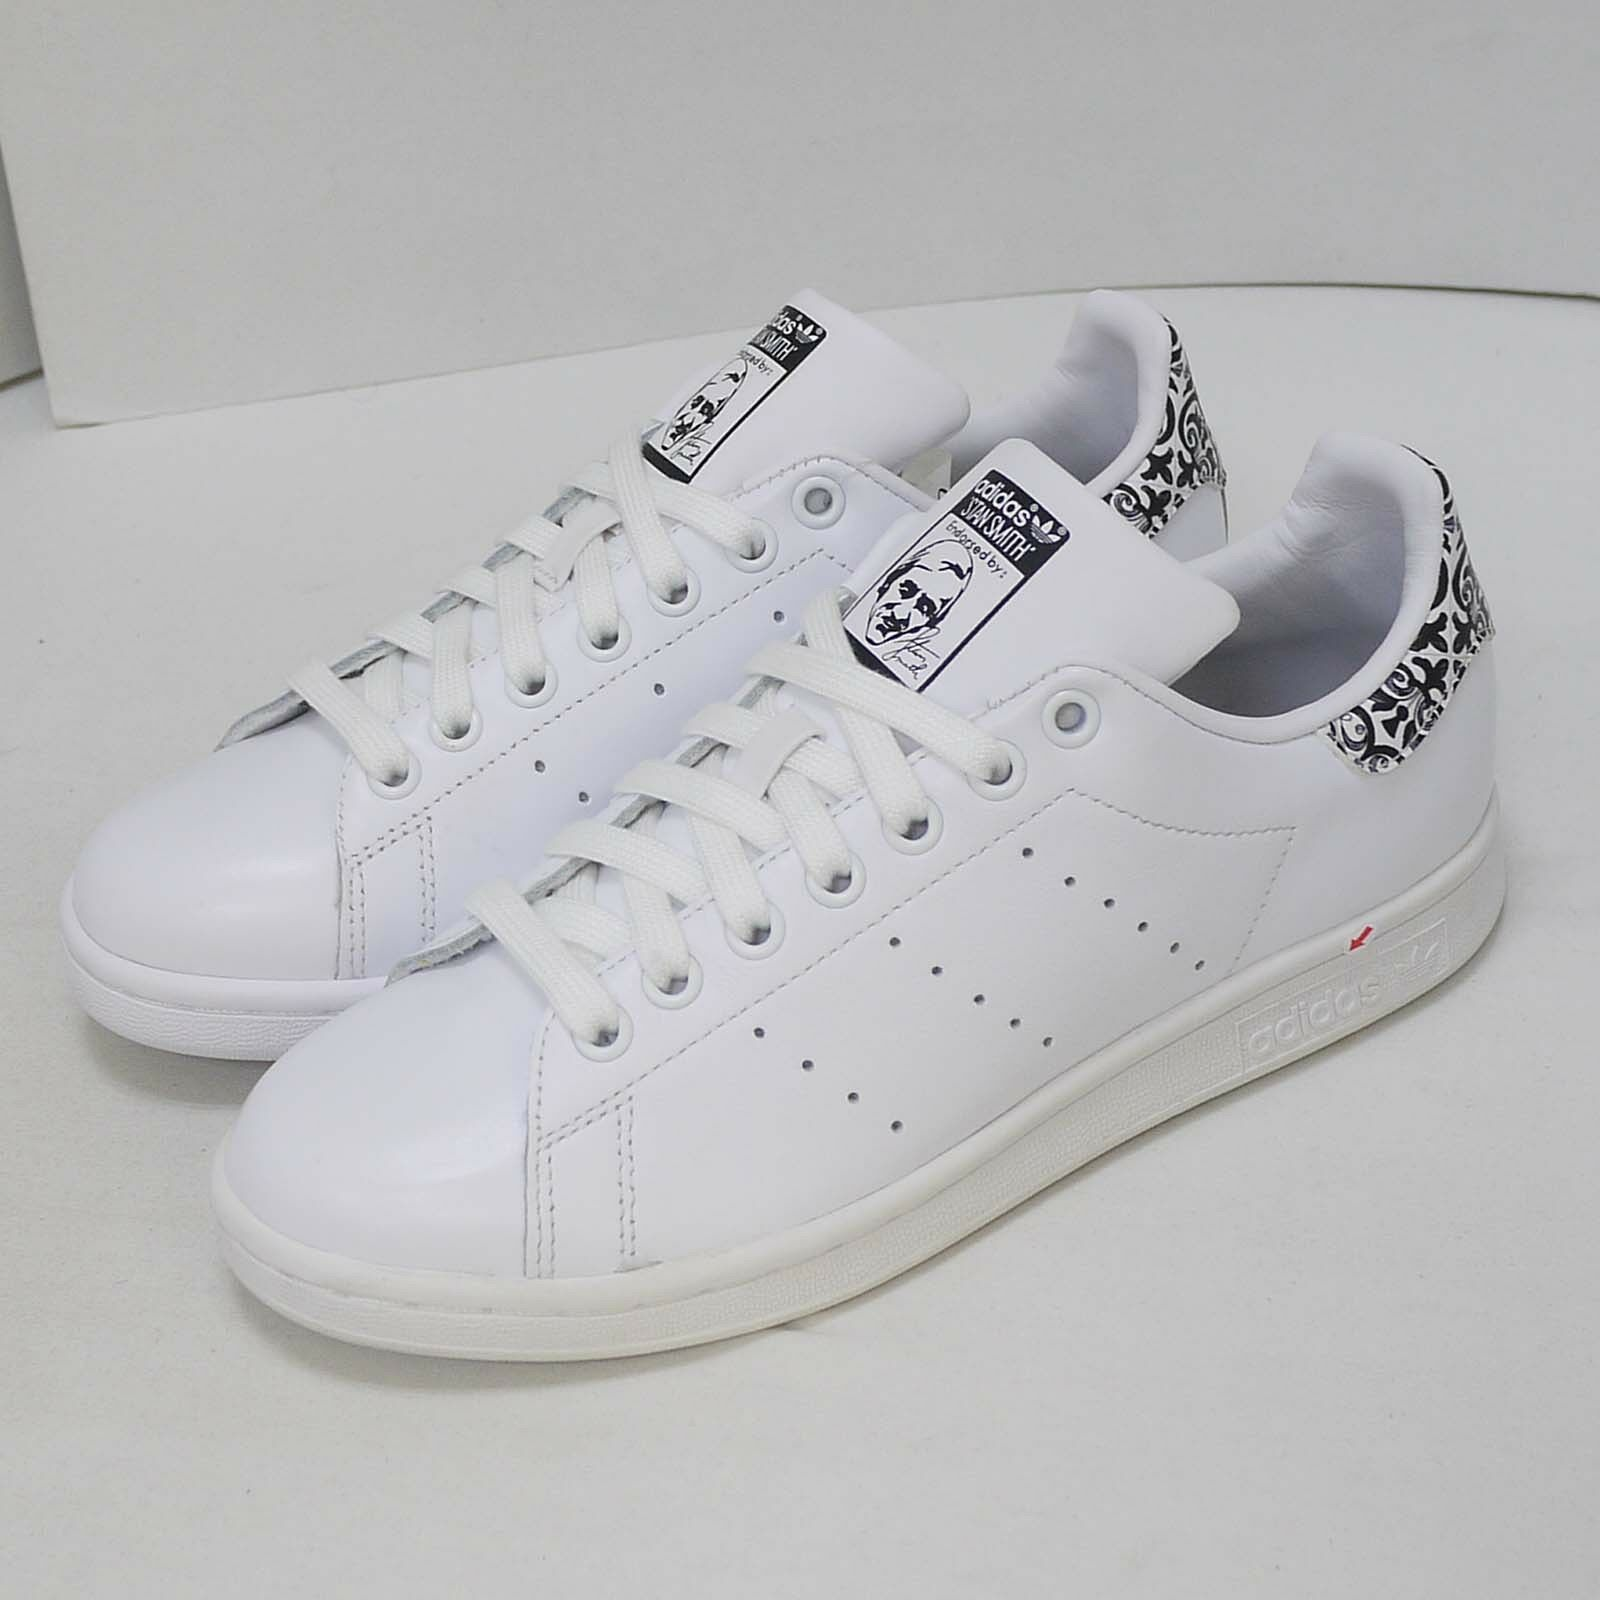 Adidas STAN SMITH W bianca - display scarpe scarpe scarpe - giallo midsole CP9715 | Aspetto Attraente